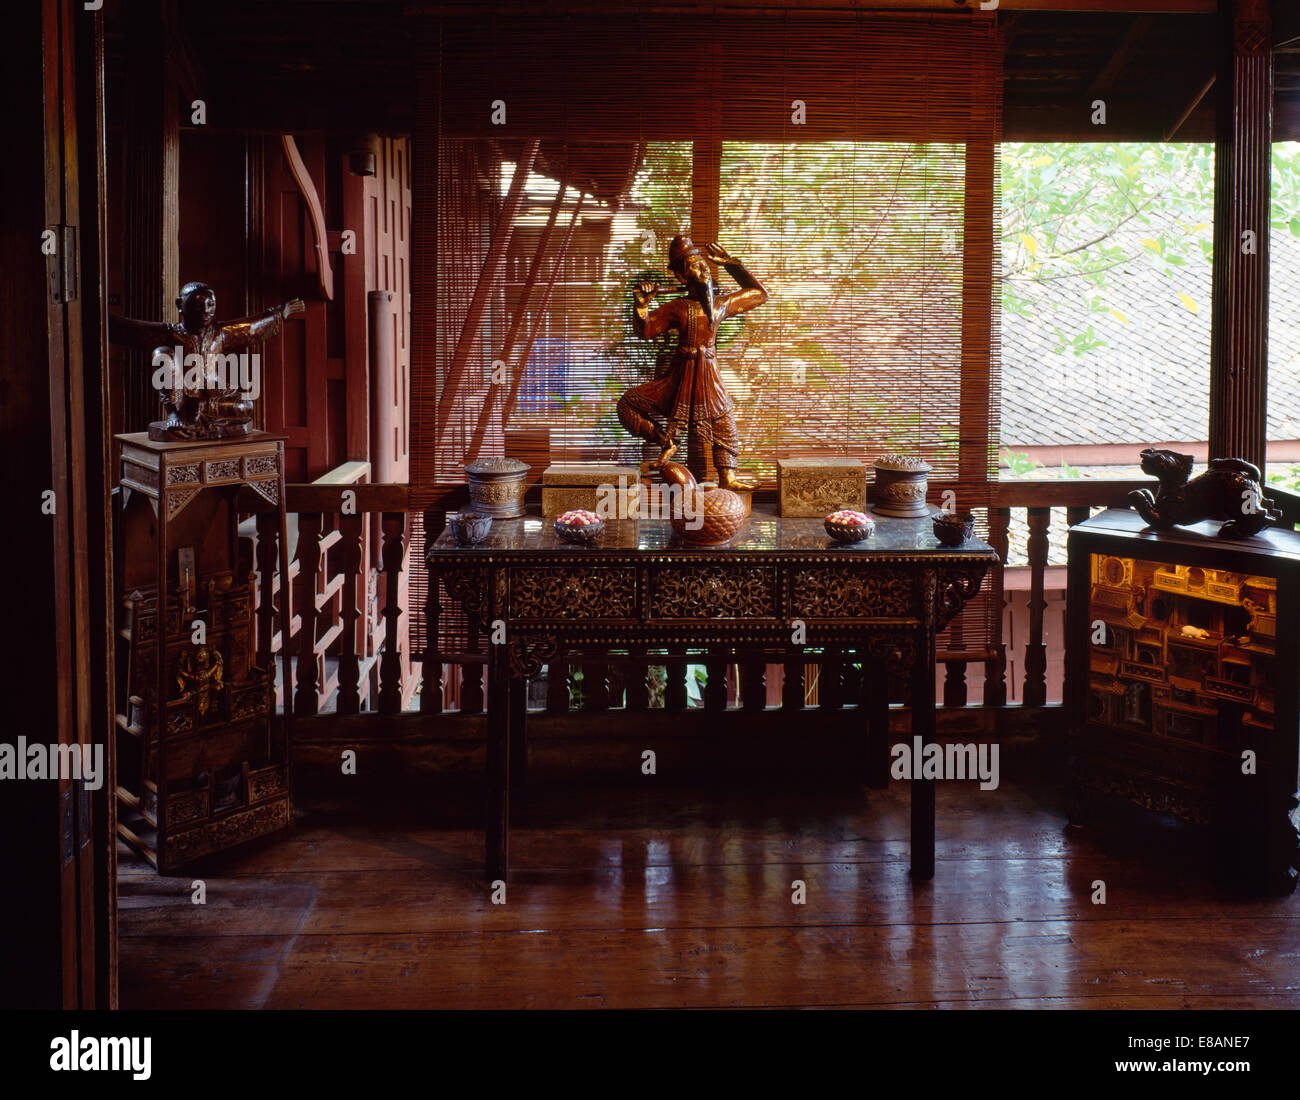 Asian statue on carved wood table on veranda with polished wood floor and split cane blinds - Stock Image